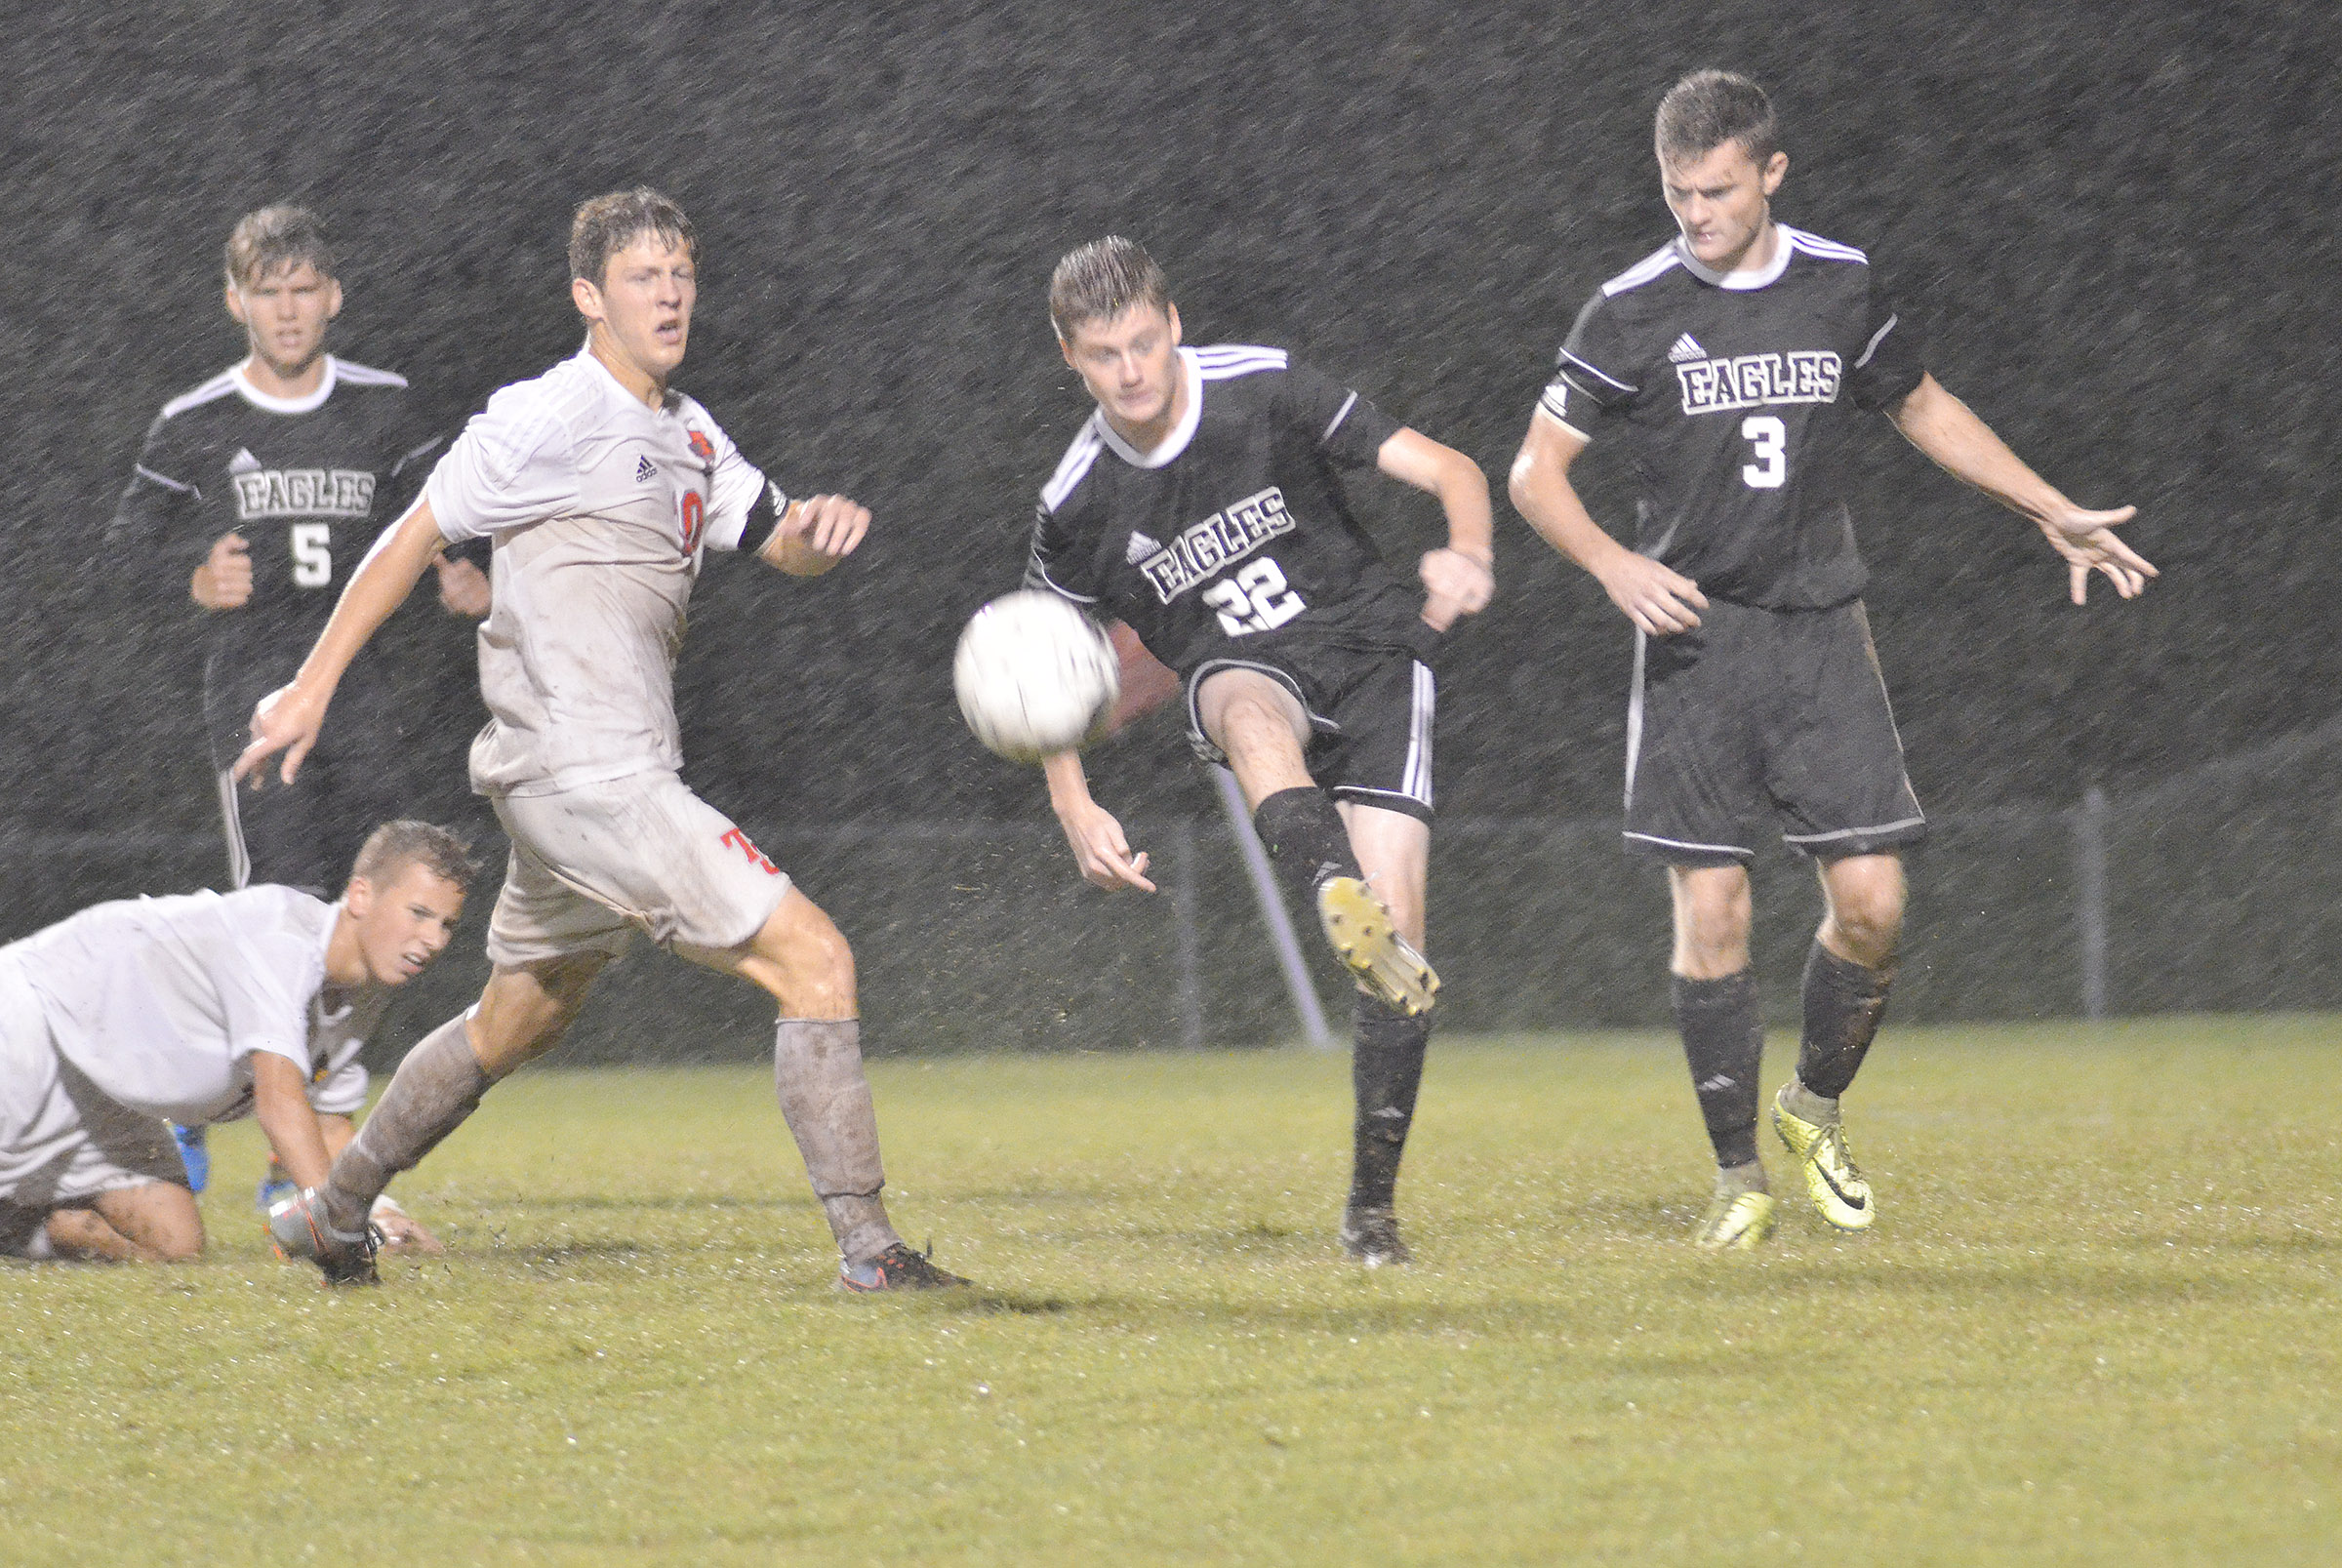 CHS freshman Tristin Faulkner kicks the ball as teammates Christian Berry, at left, a senior, and senior Bryce Richardson play defense.